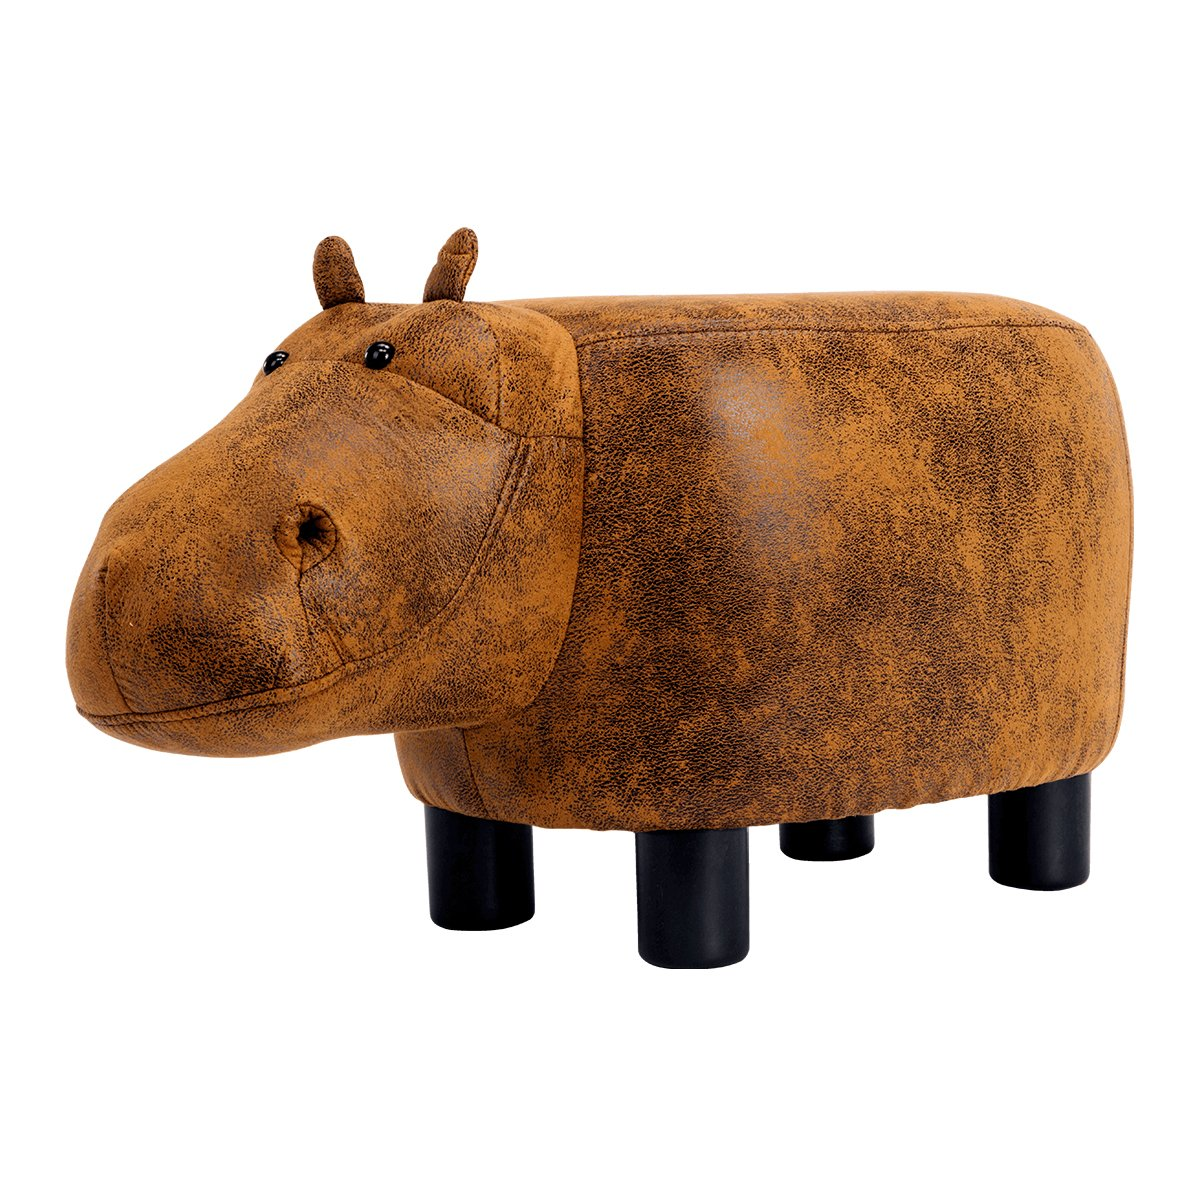 Guteen Upholstered Ride-on Toy Seat Ottoman Footrest Stool with Vivid Adorable Animal-Like Features(Brown Hippo) by GUTEEN